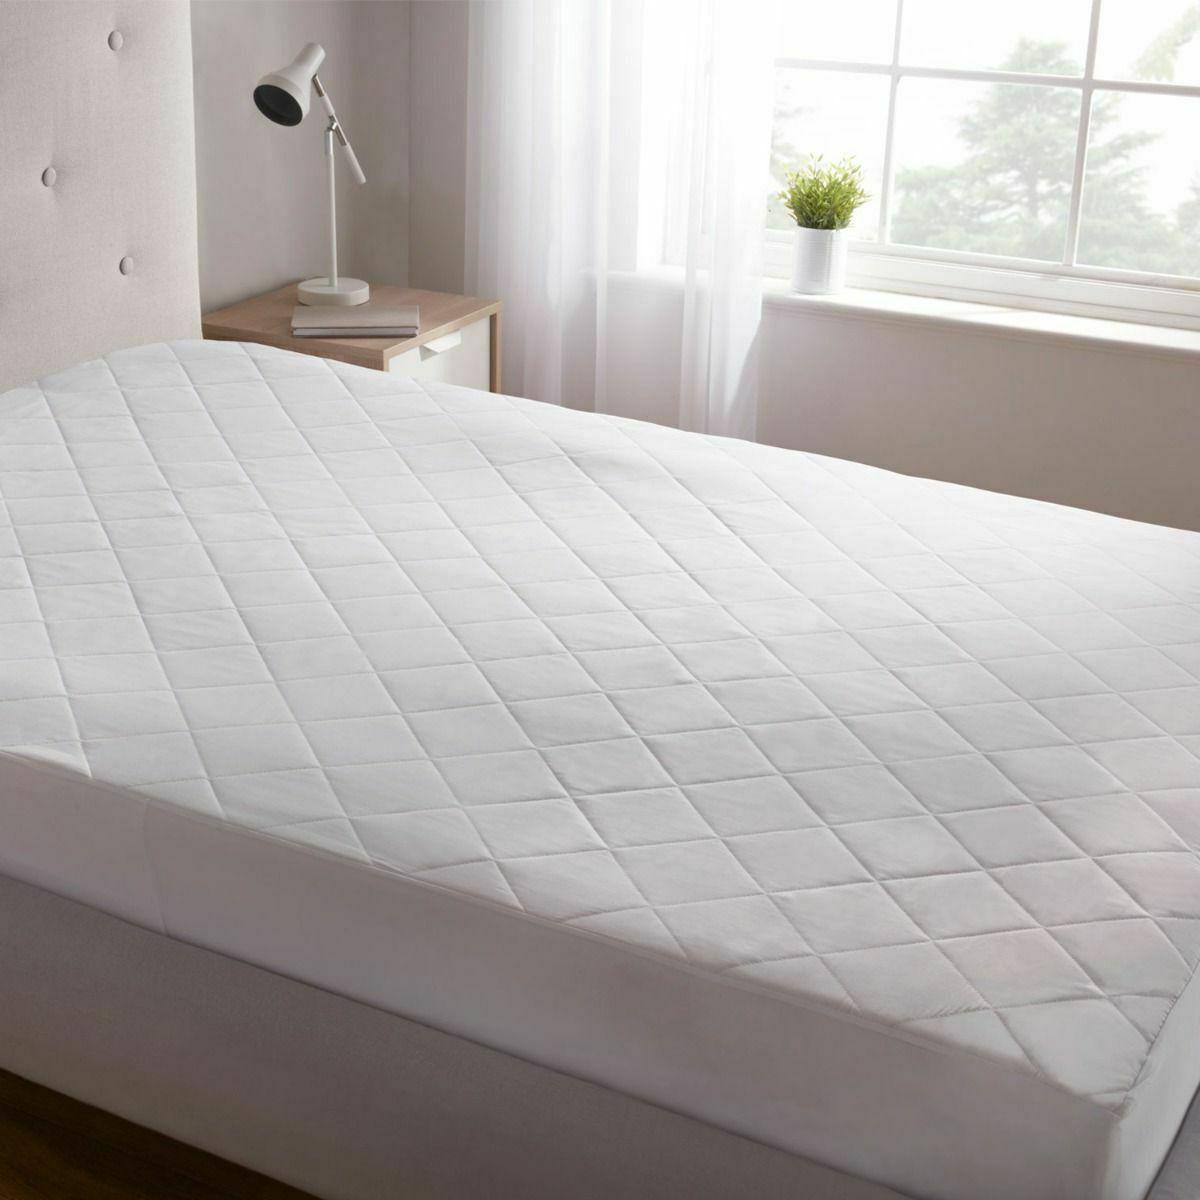 "King Size Quilted Mattress Protector Pad Topper Cover 16"" De"